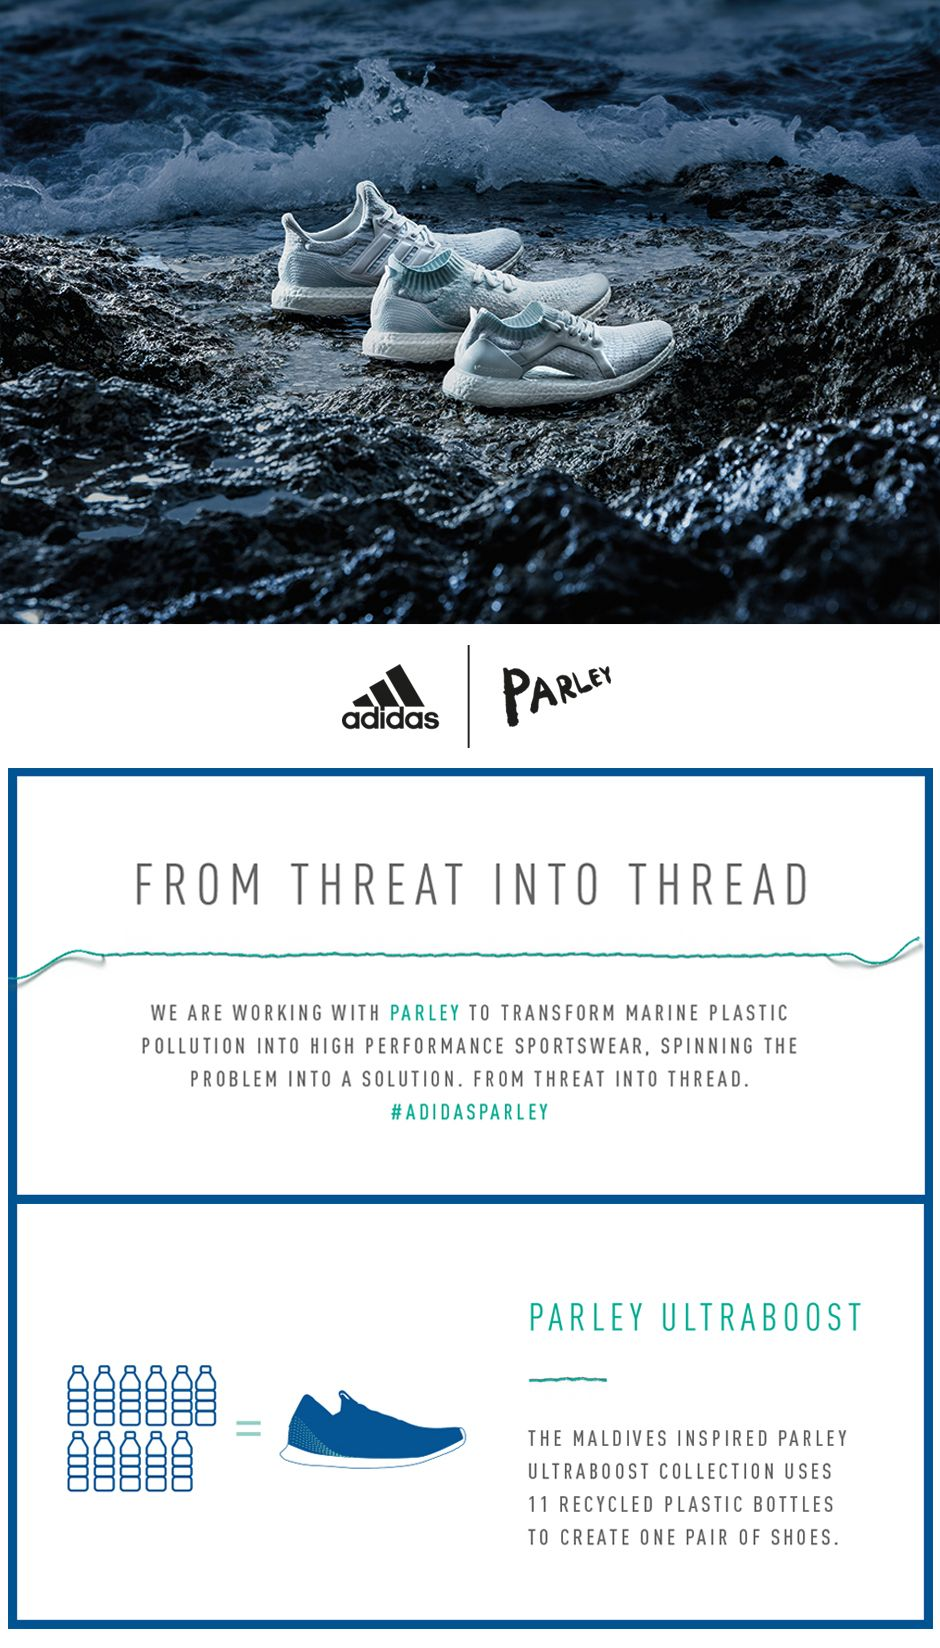 adidas Parley - We are working with Parley to transform marine plastic pollution into high performance sportswear. Spinning the problem into a solution.